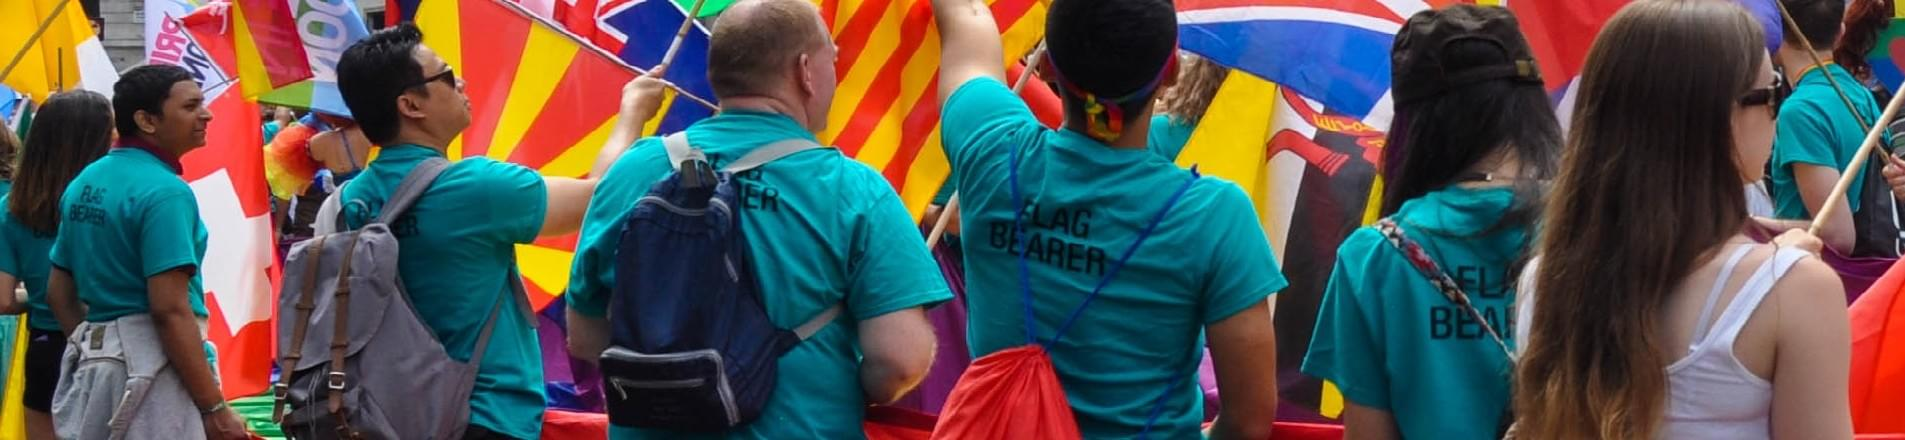 Thousands celebrate at London's pride parade 2015